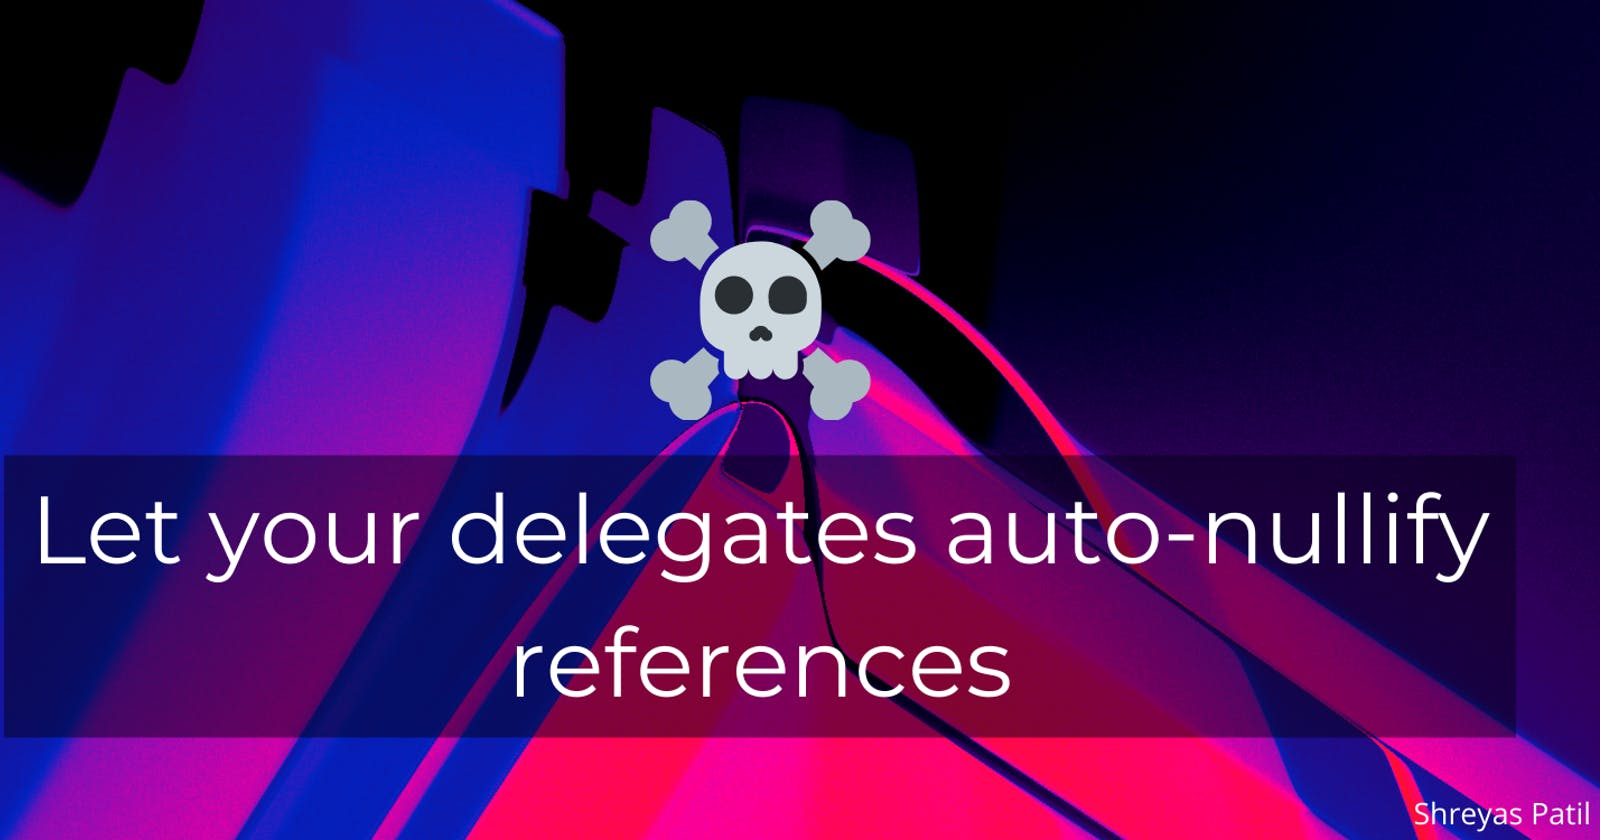 Let your delegates auto-nullify references☠️